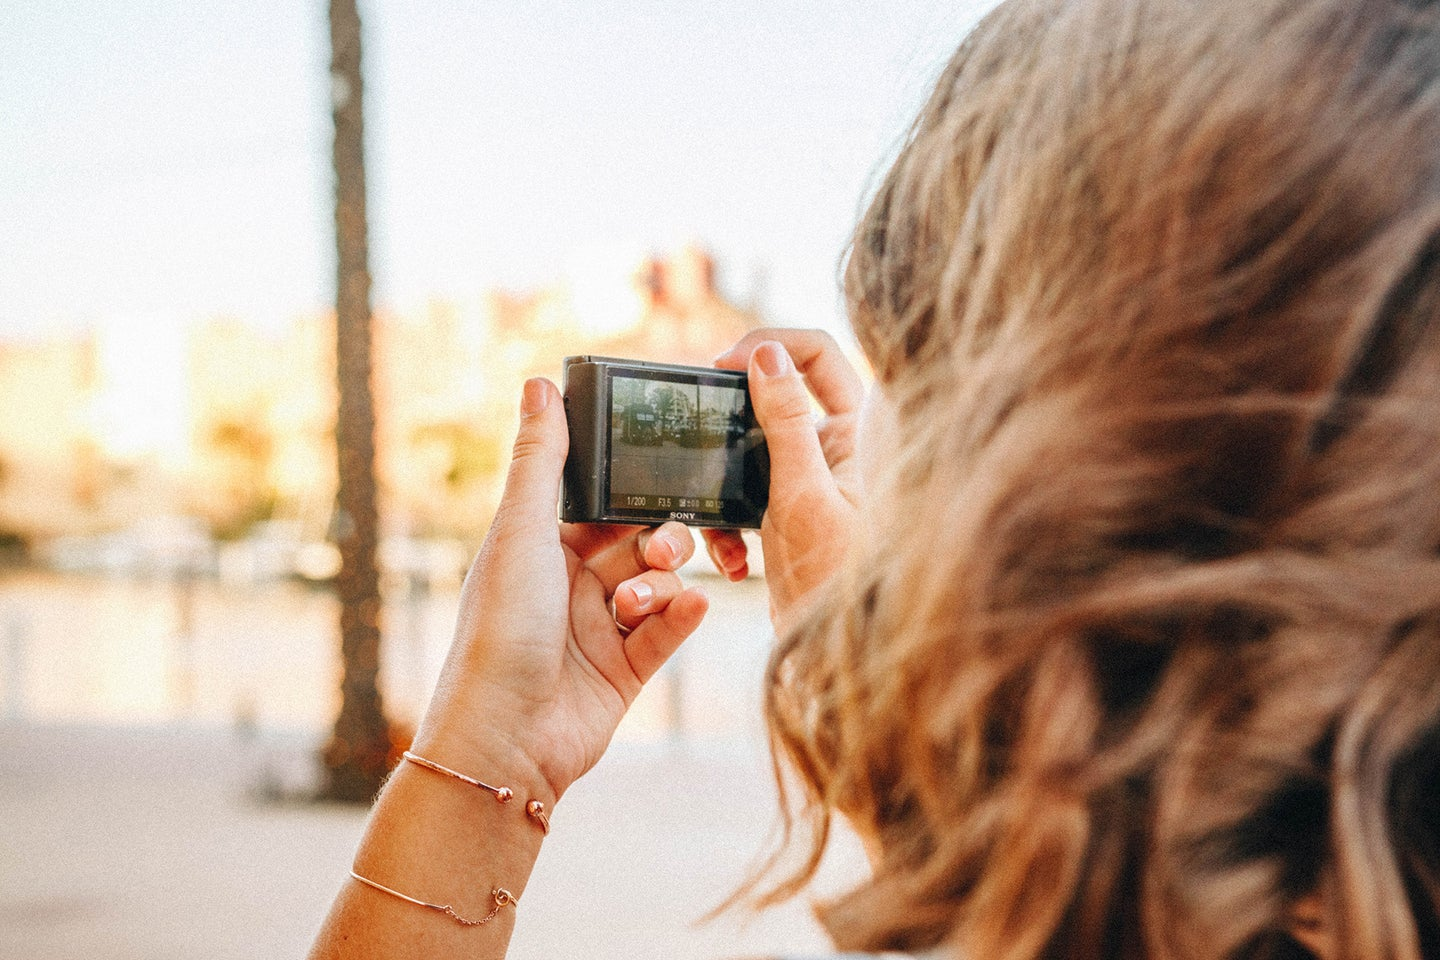 brunette woman holding a point-and-shoot camera outdoors